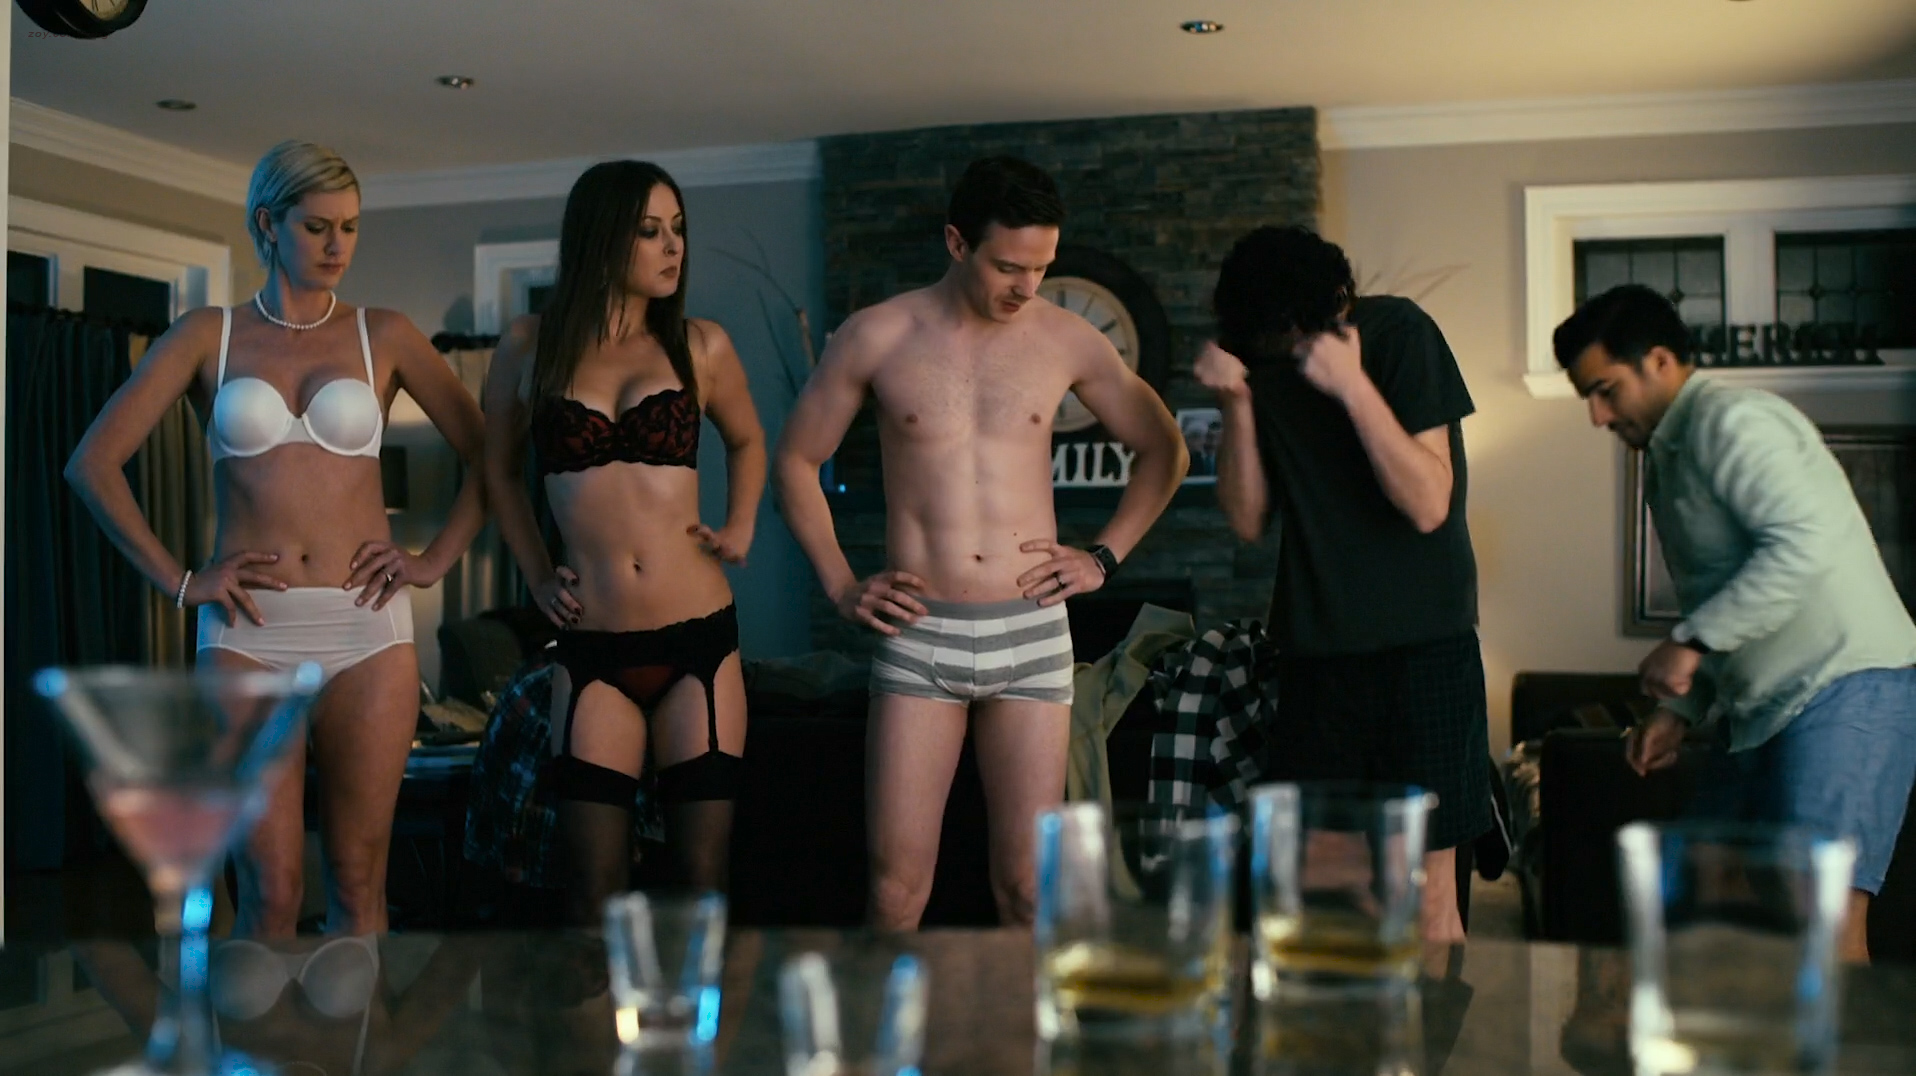 Lauren Lee Smith hot sex Jewel Staite hot Zoe Cleland nude and Katharine Isabelle - How To Plan An Orgy In A Small Town (CA-2015) HD 1080p WEB-DL (5)